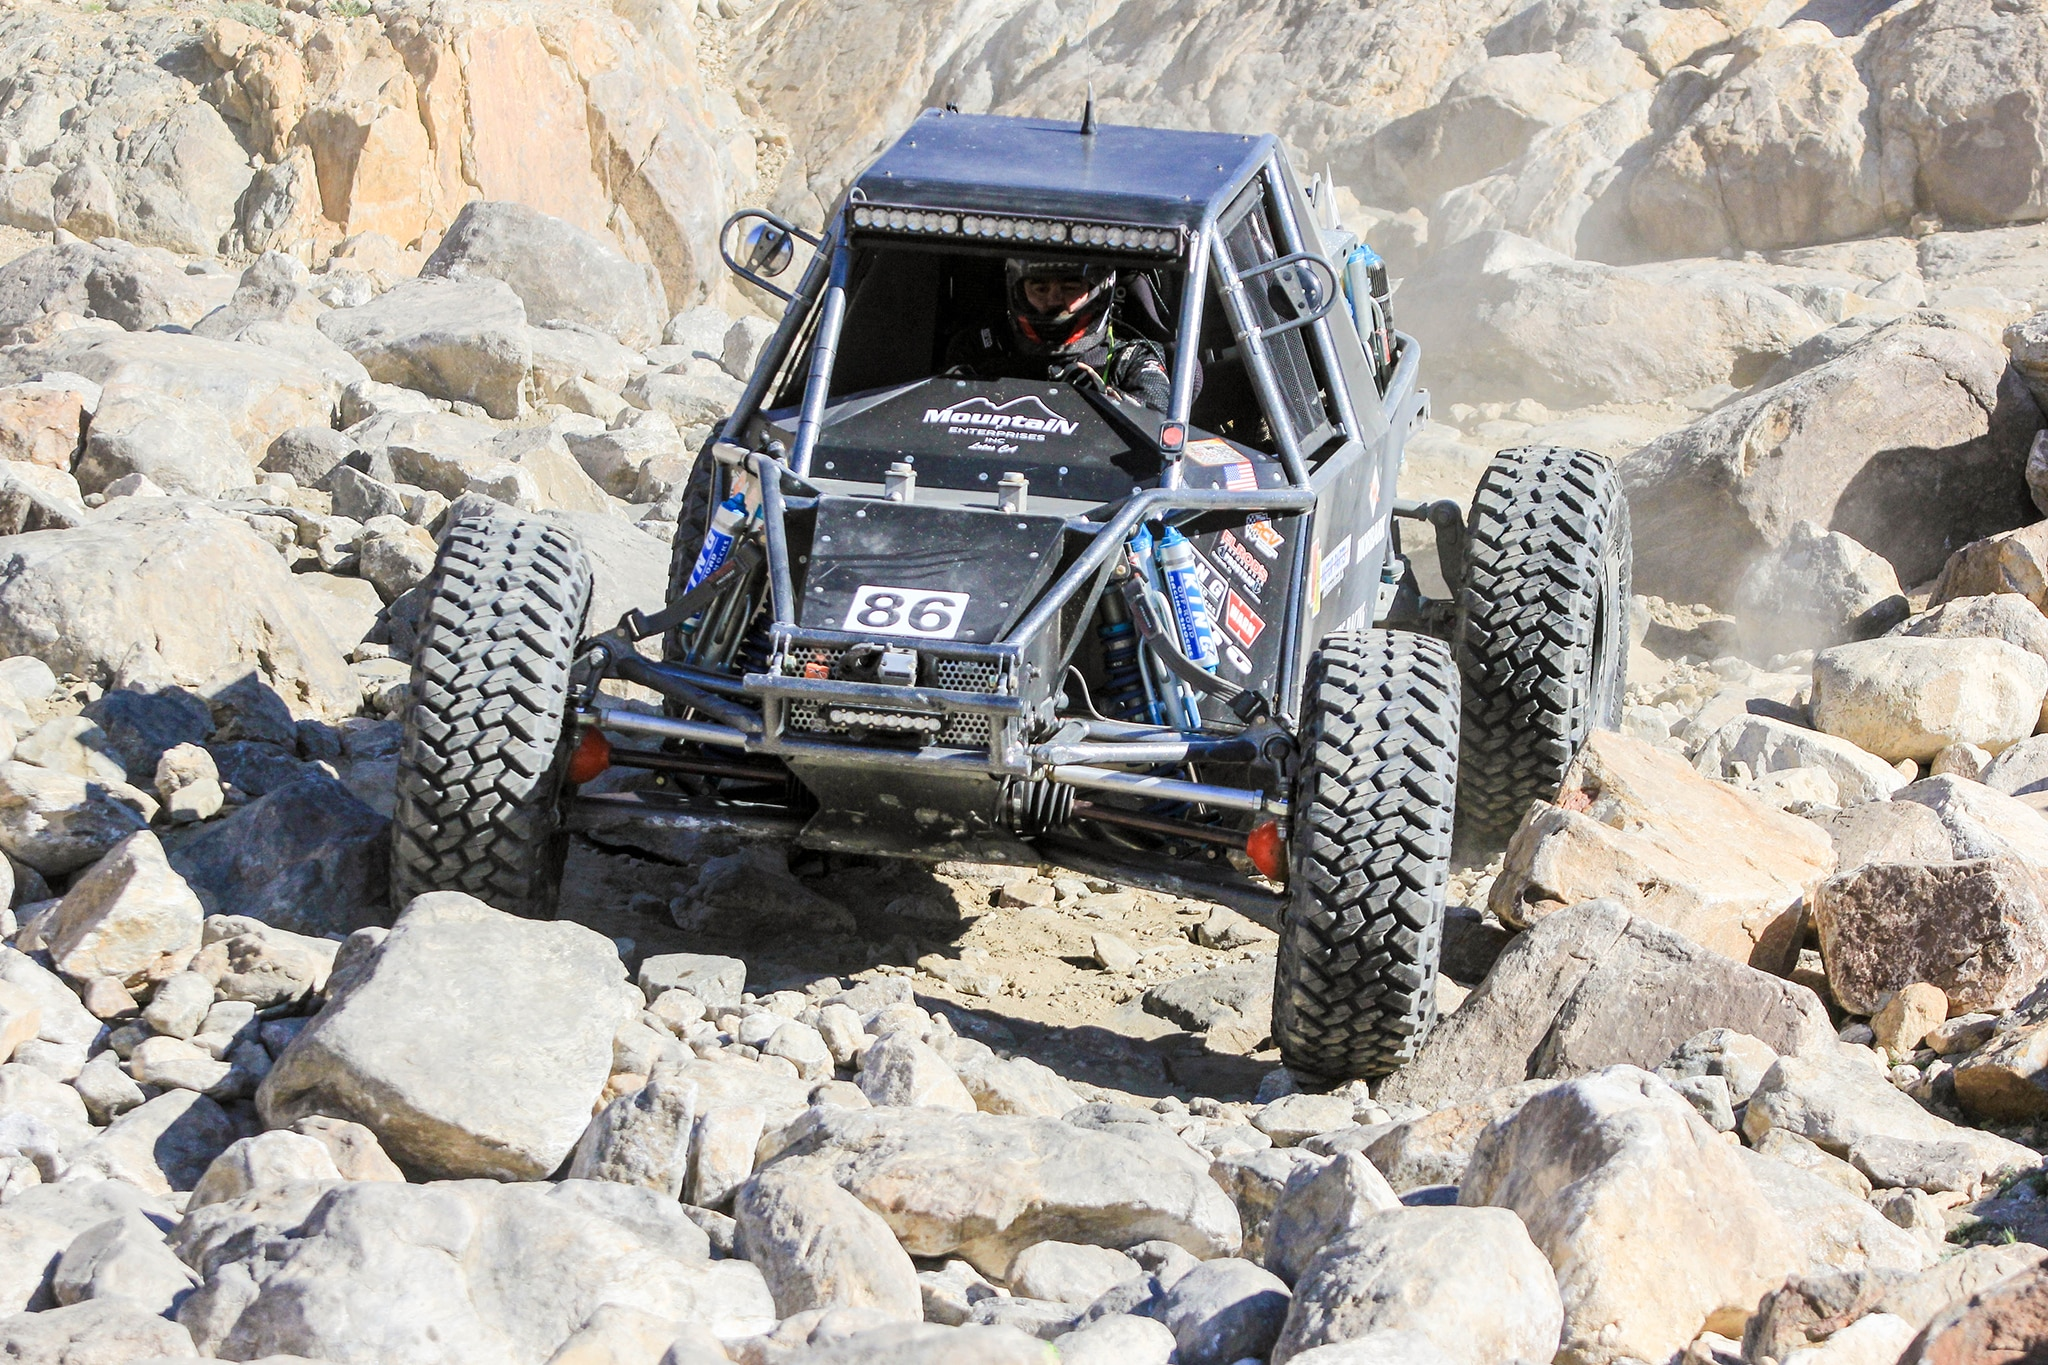 2019 King Of The Hammers Race 6